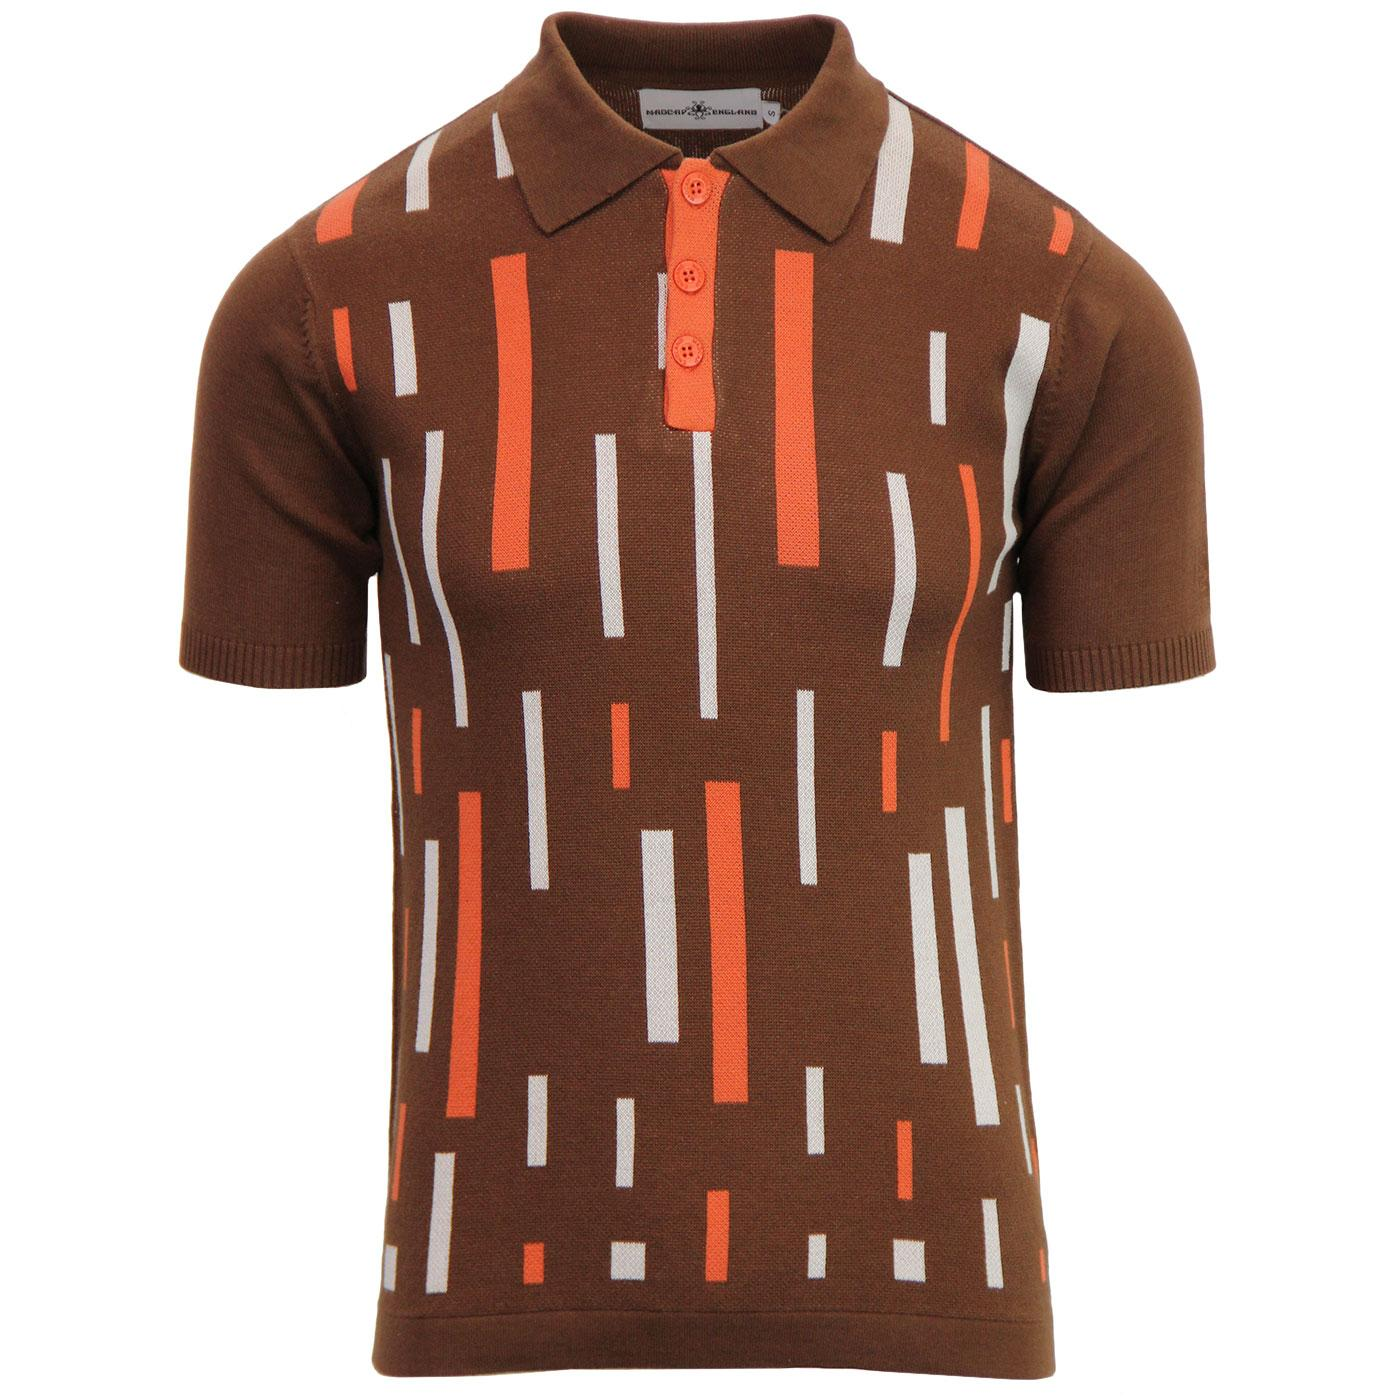 Madcap England Eames Men's 1960s Mod Colour Block Polo Shirt in Bison Brown